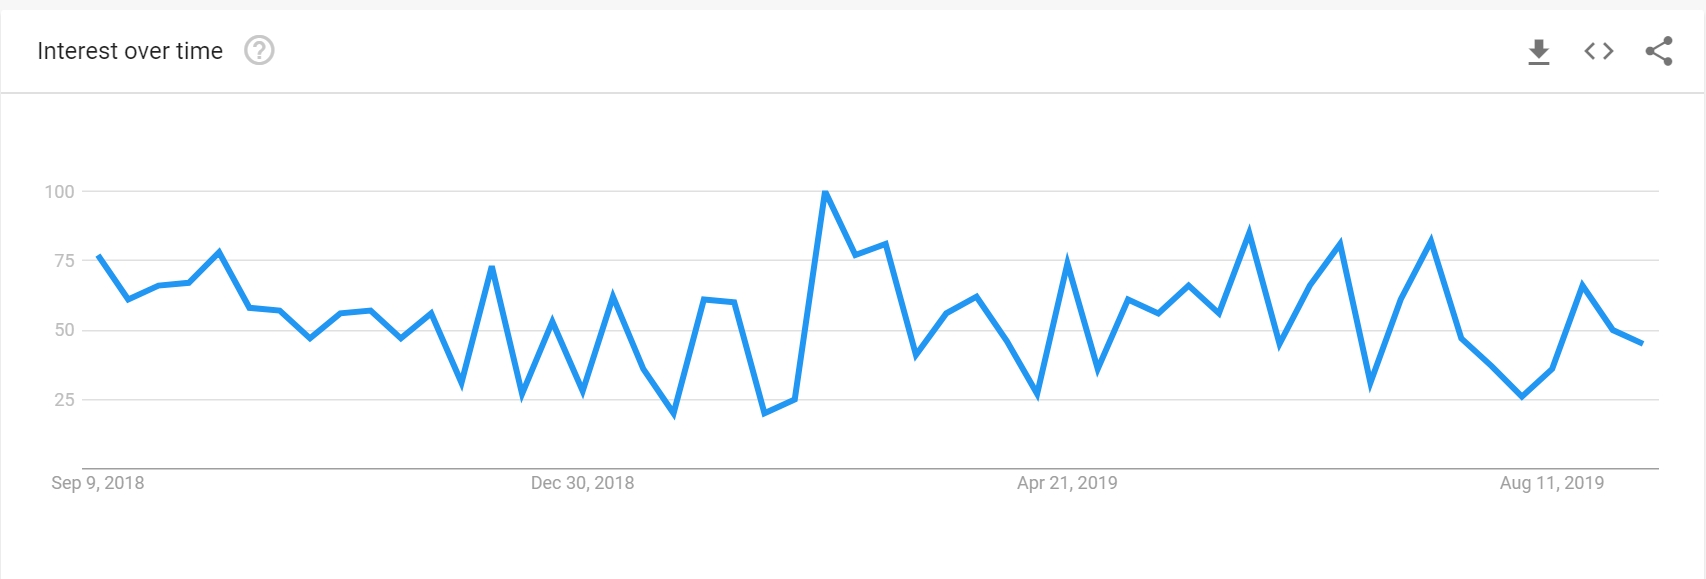 Icon search trend